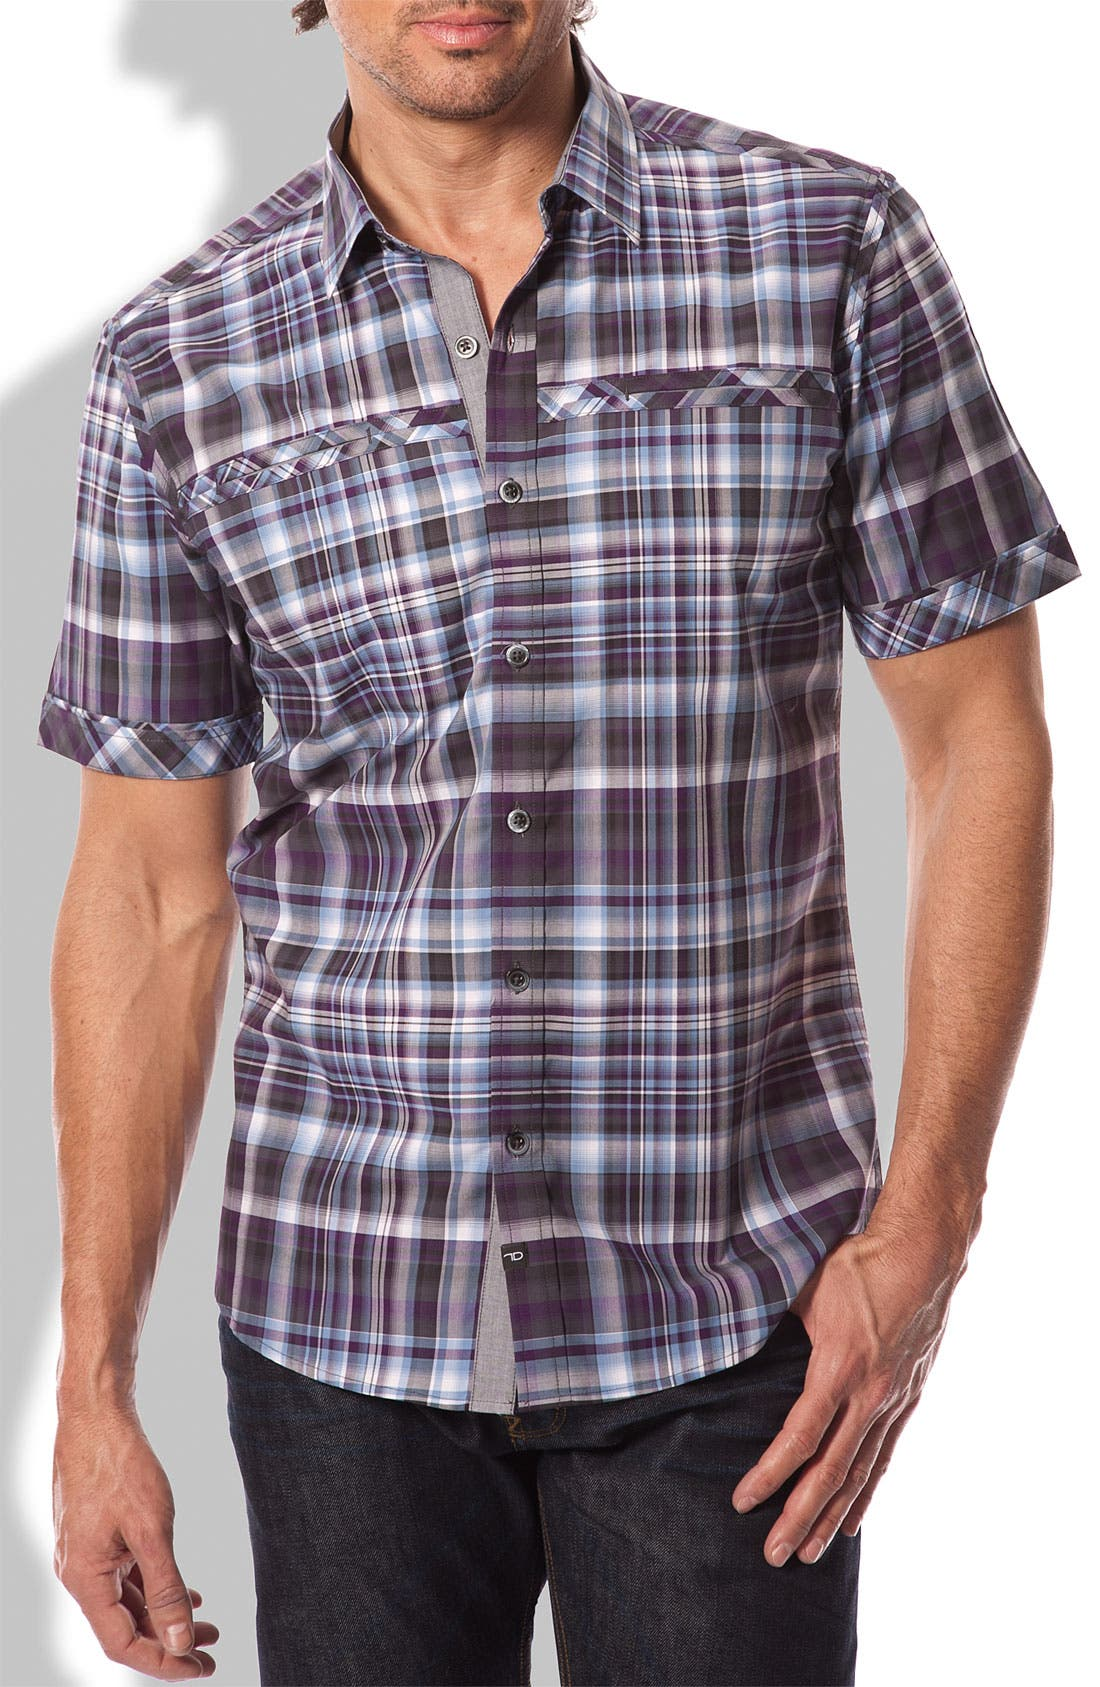 Main Image - 7 Diamonds 'Iridescent' Plaid Woven Short Sleeve Shirt